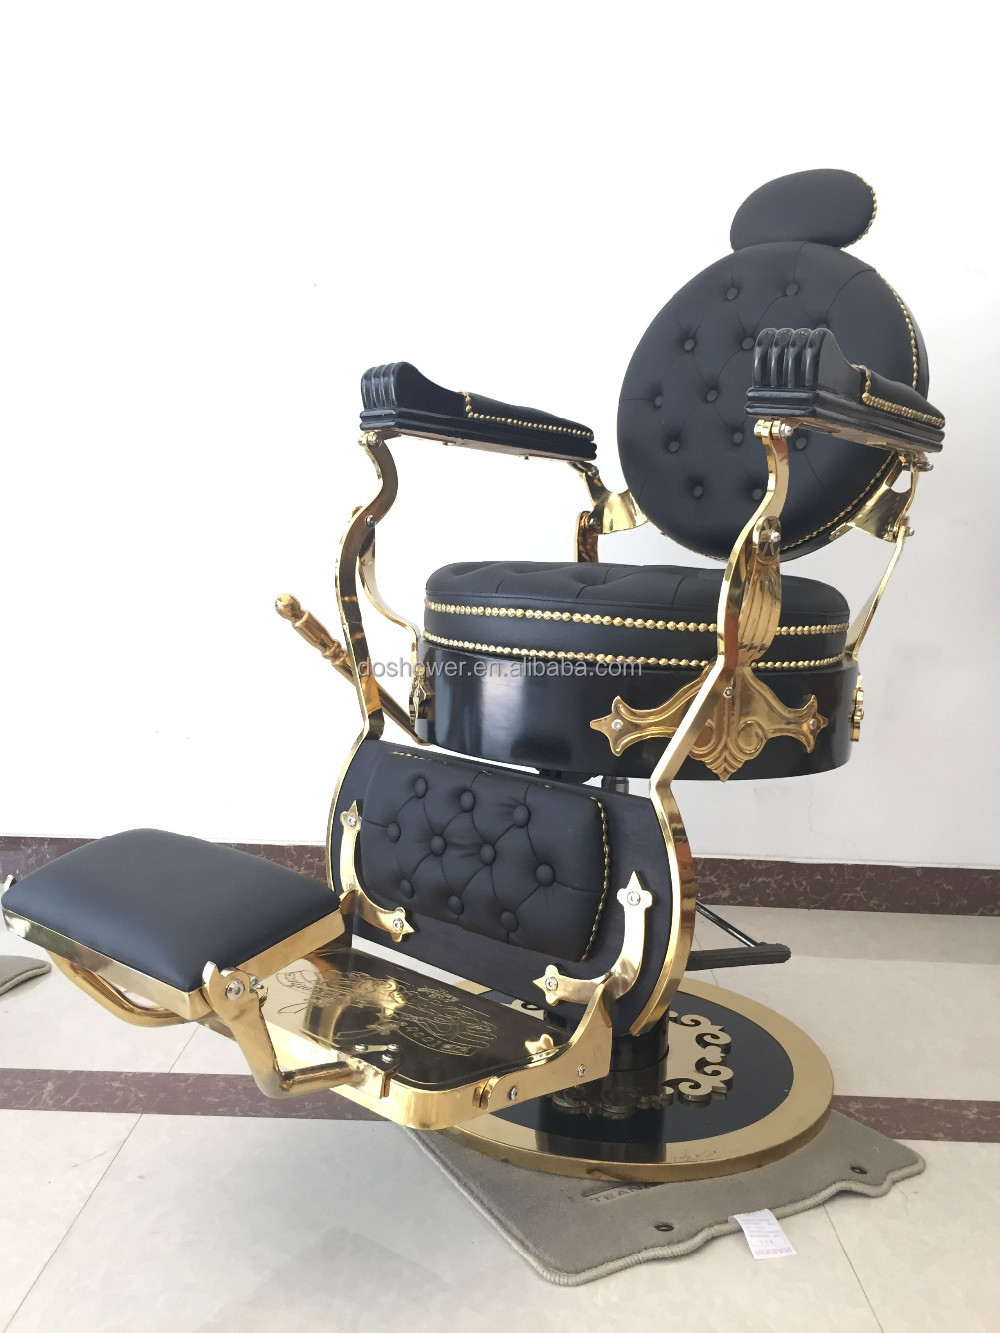 Doshower hot sale barber chair headrest cheap and modern for sale